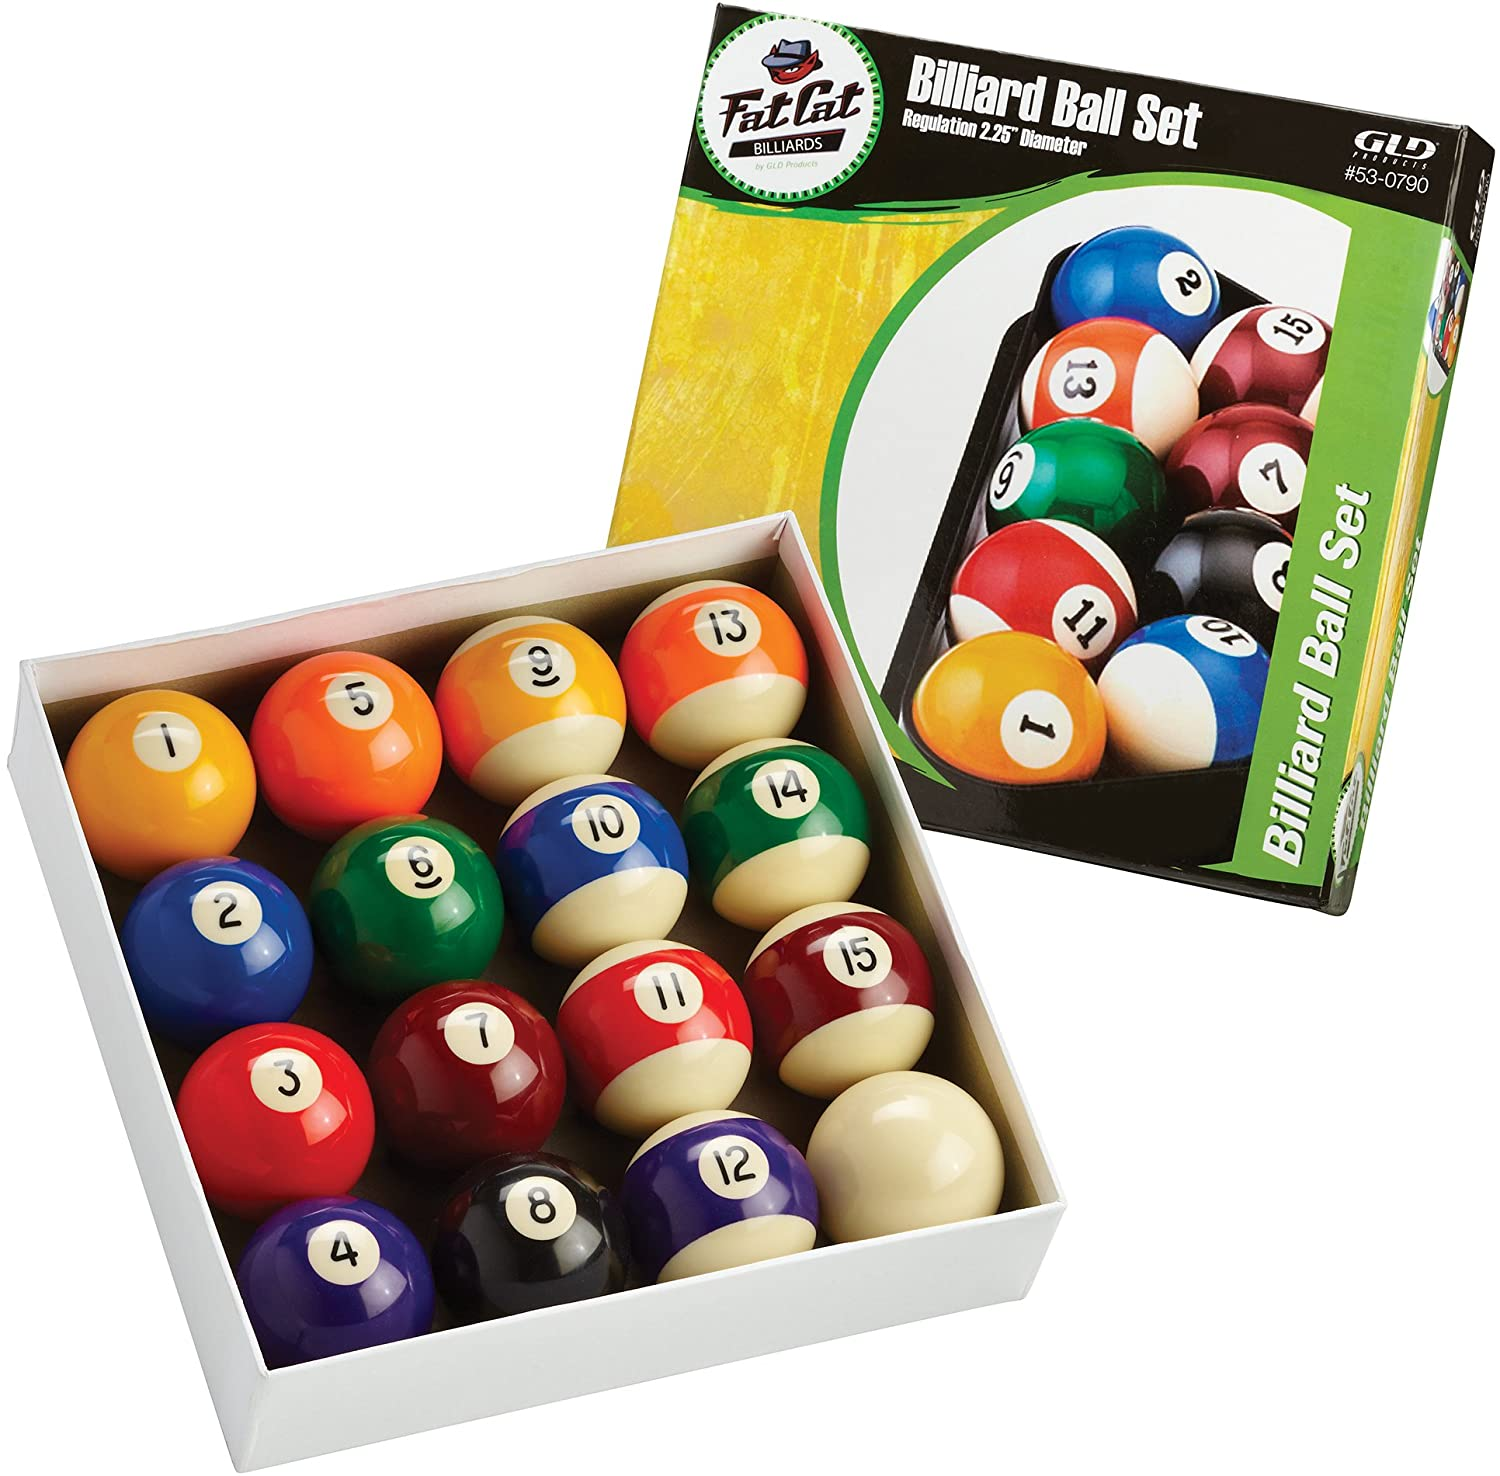 Fat Cat 2-1/4 Regulation Size Billiard/Pool Balls, Complete 16 Ball Set 53-0790